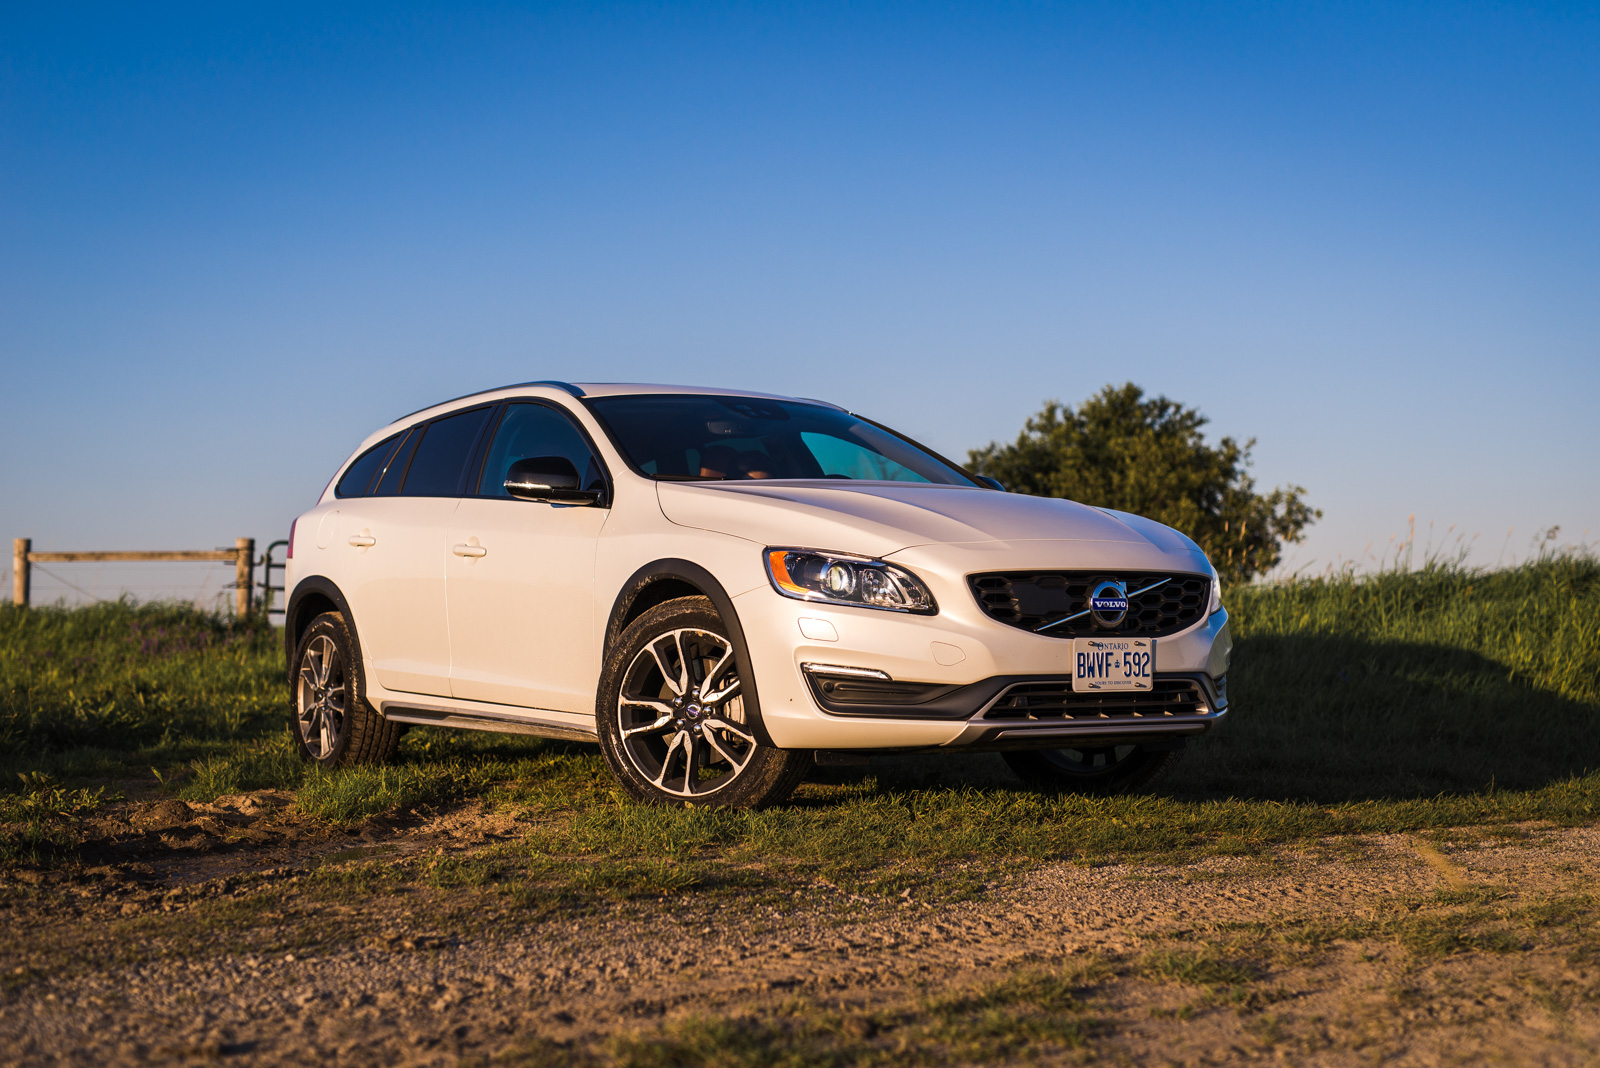 Volvo V60 Cross Country >> Review: 2015 Volvo V60 Cross Country | Canadian Auto Review